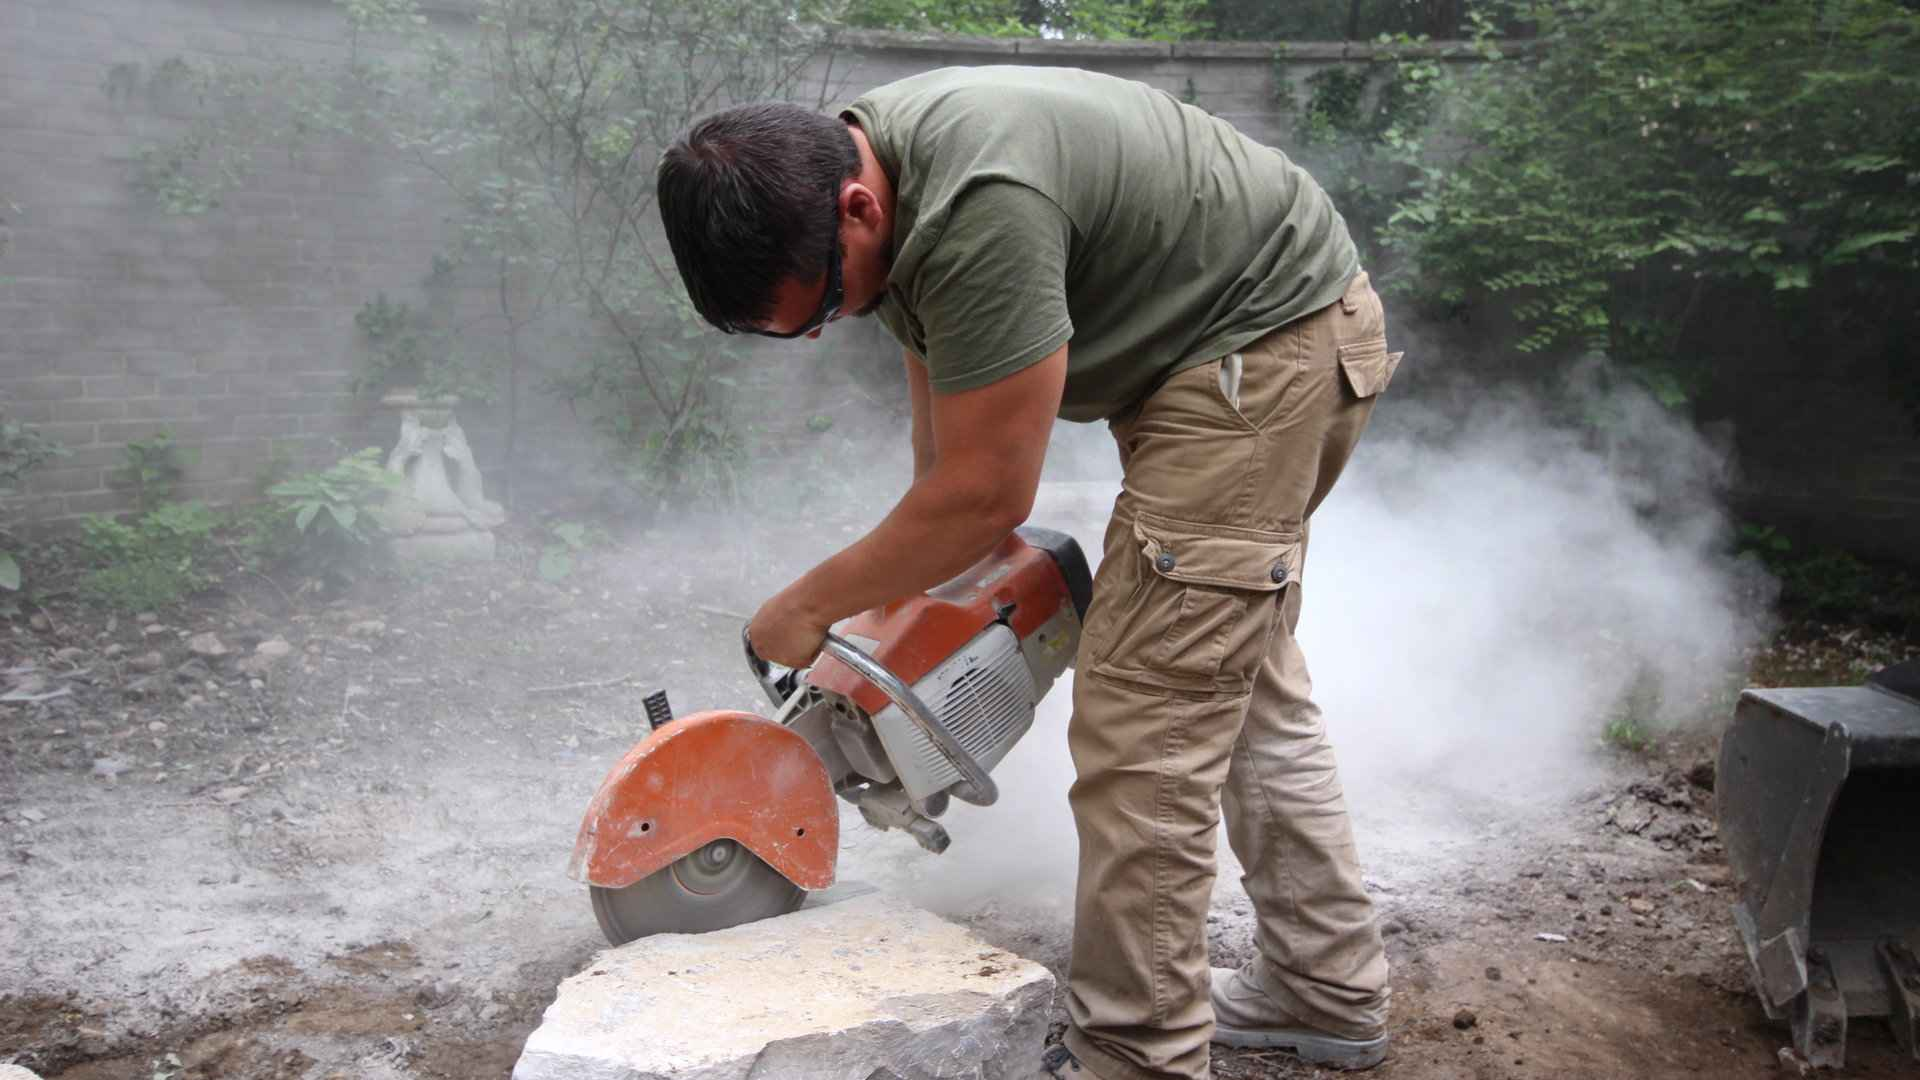 A landscaping project in London Ontario. Nate cutting stone.